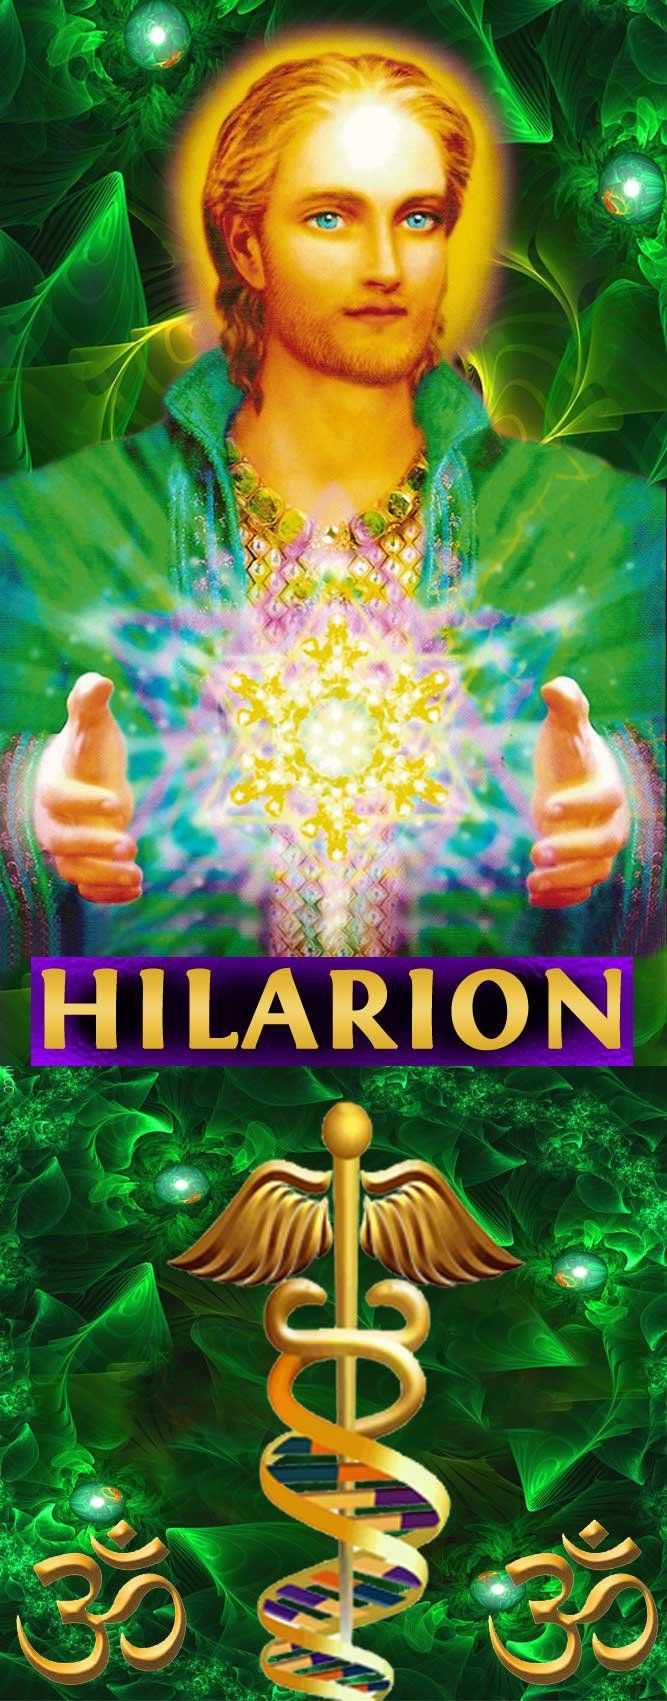 Ascended Master Hilarion  is Chohan of the Fifth Ray, the green ray and represents Healing, Science, Vision and Prosperity, may all my friends encounter this loving Master and receive Healing and Prosperity.